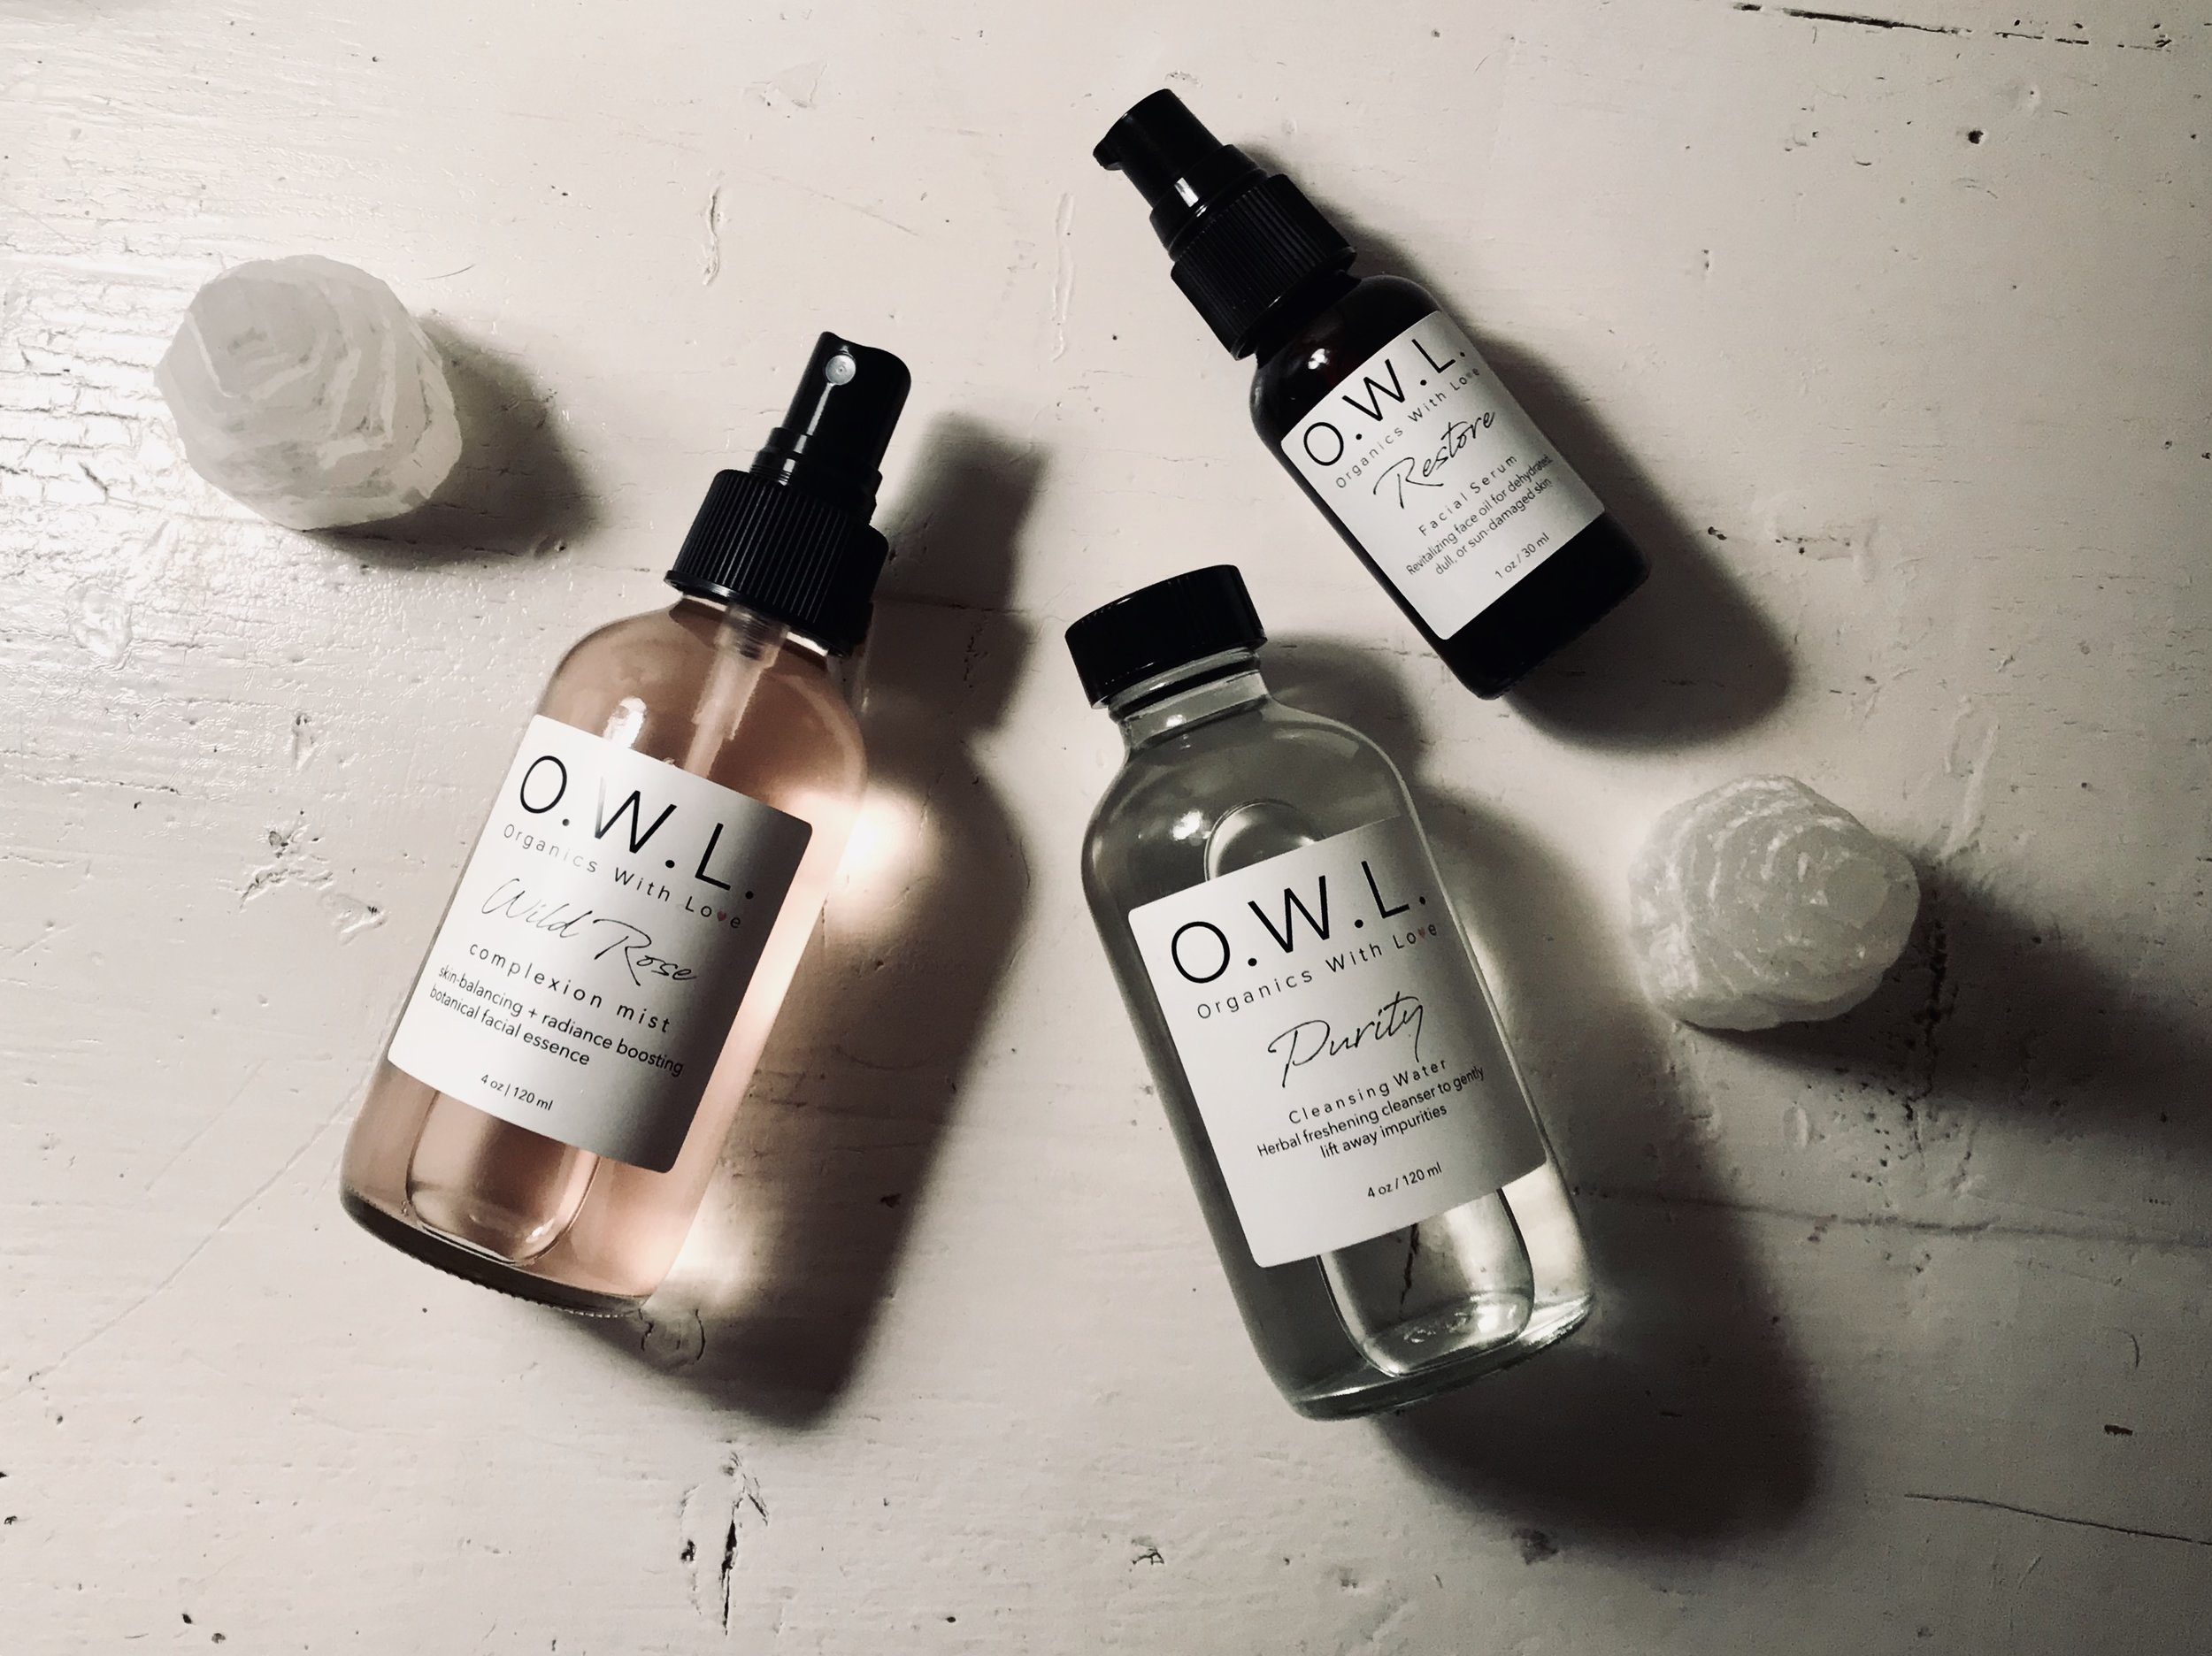 suggested skincare practice: - 1. Begin by applying Element Cleansing Oil to dry skin. Wet hands and gently massage skin to dissolve and lift away makeup and impurities. Follow with a warm face towel over face and neck, then gently wipe skin until clean.2. Finish with Purity Cleansing Water to remove any excess product and debris. Apply product to cotton round, then gently glide cotton across dry skin, avoiding the eye area. Repeat until clean. Finish by rinsing with warm water, then pat dry.3. Follow by generously showering skin with Wild Rose Complexion Mist.4. Immediately following Wild Rose, while skin is still damp, warm 1-5 pumps of Restore Age-Defying Serum in palm of hand, then gently massage into skin using upward and outward motions.5. Every 2nd or 3rd day, detox and brighten skin with Revival Exfoliating Masque. Revival can be used as a masque or a quick exfoliation treatment.